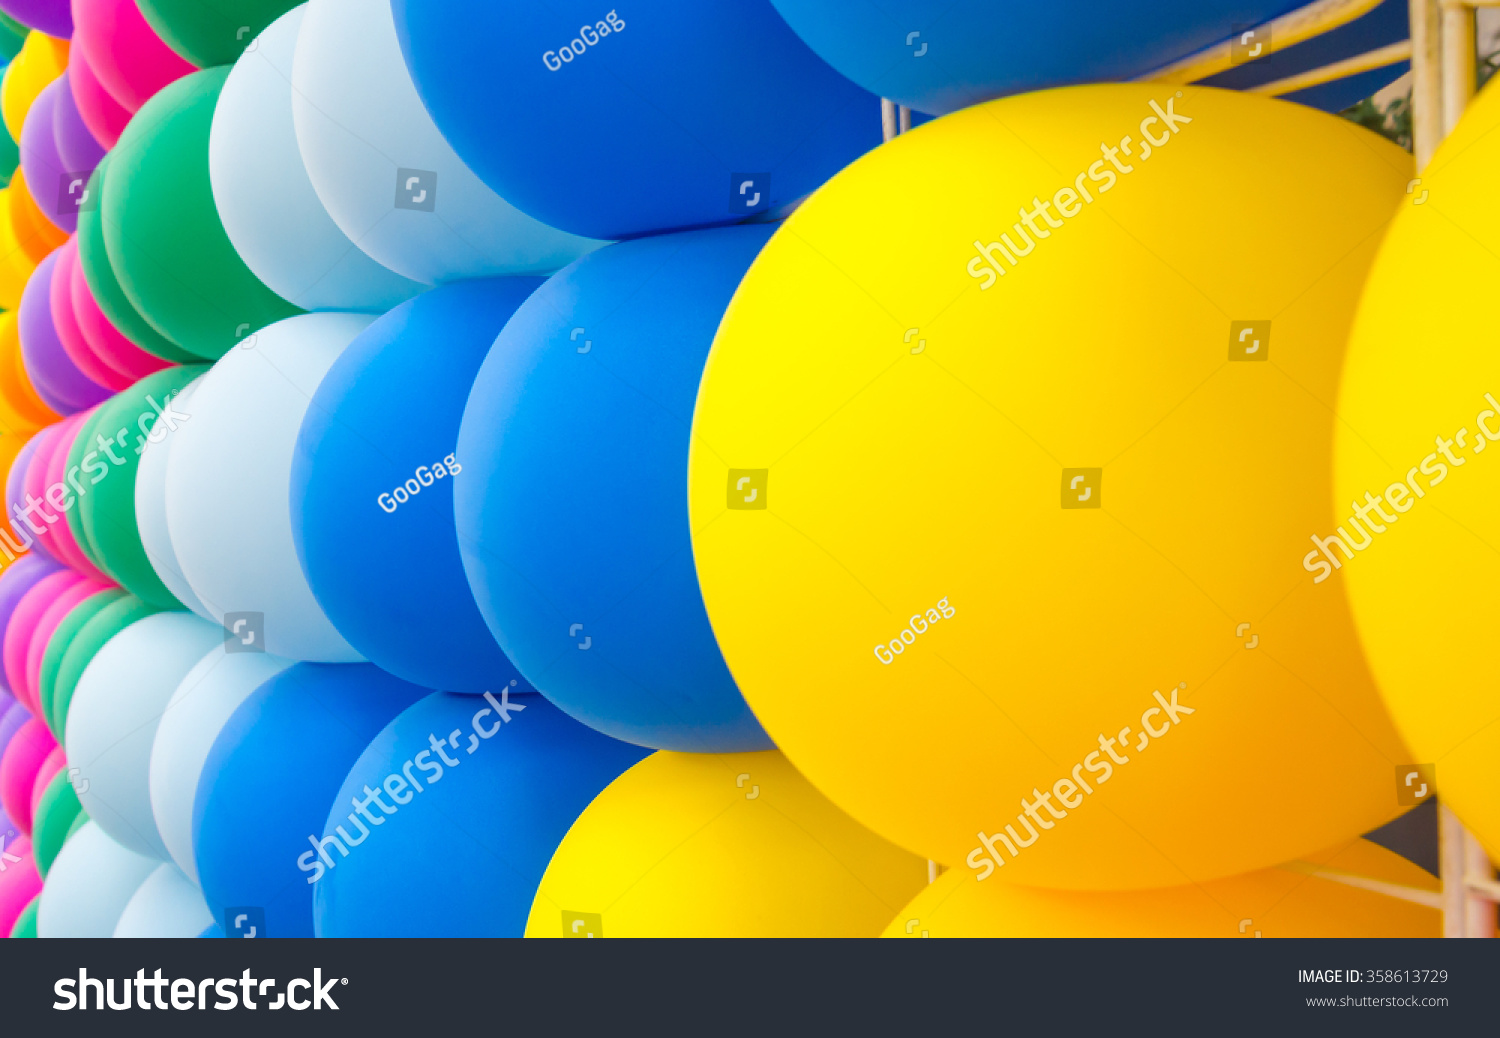 Colorful Decorative Balloons Wall Background Backdrop Stock Photo ...